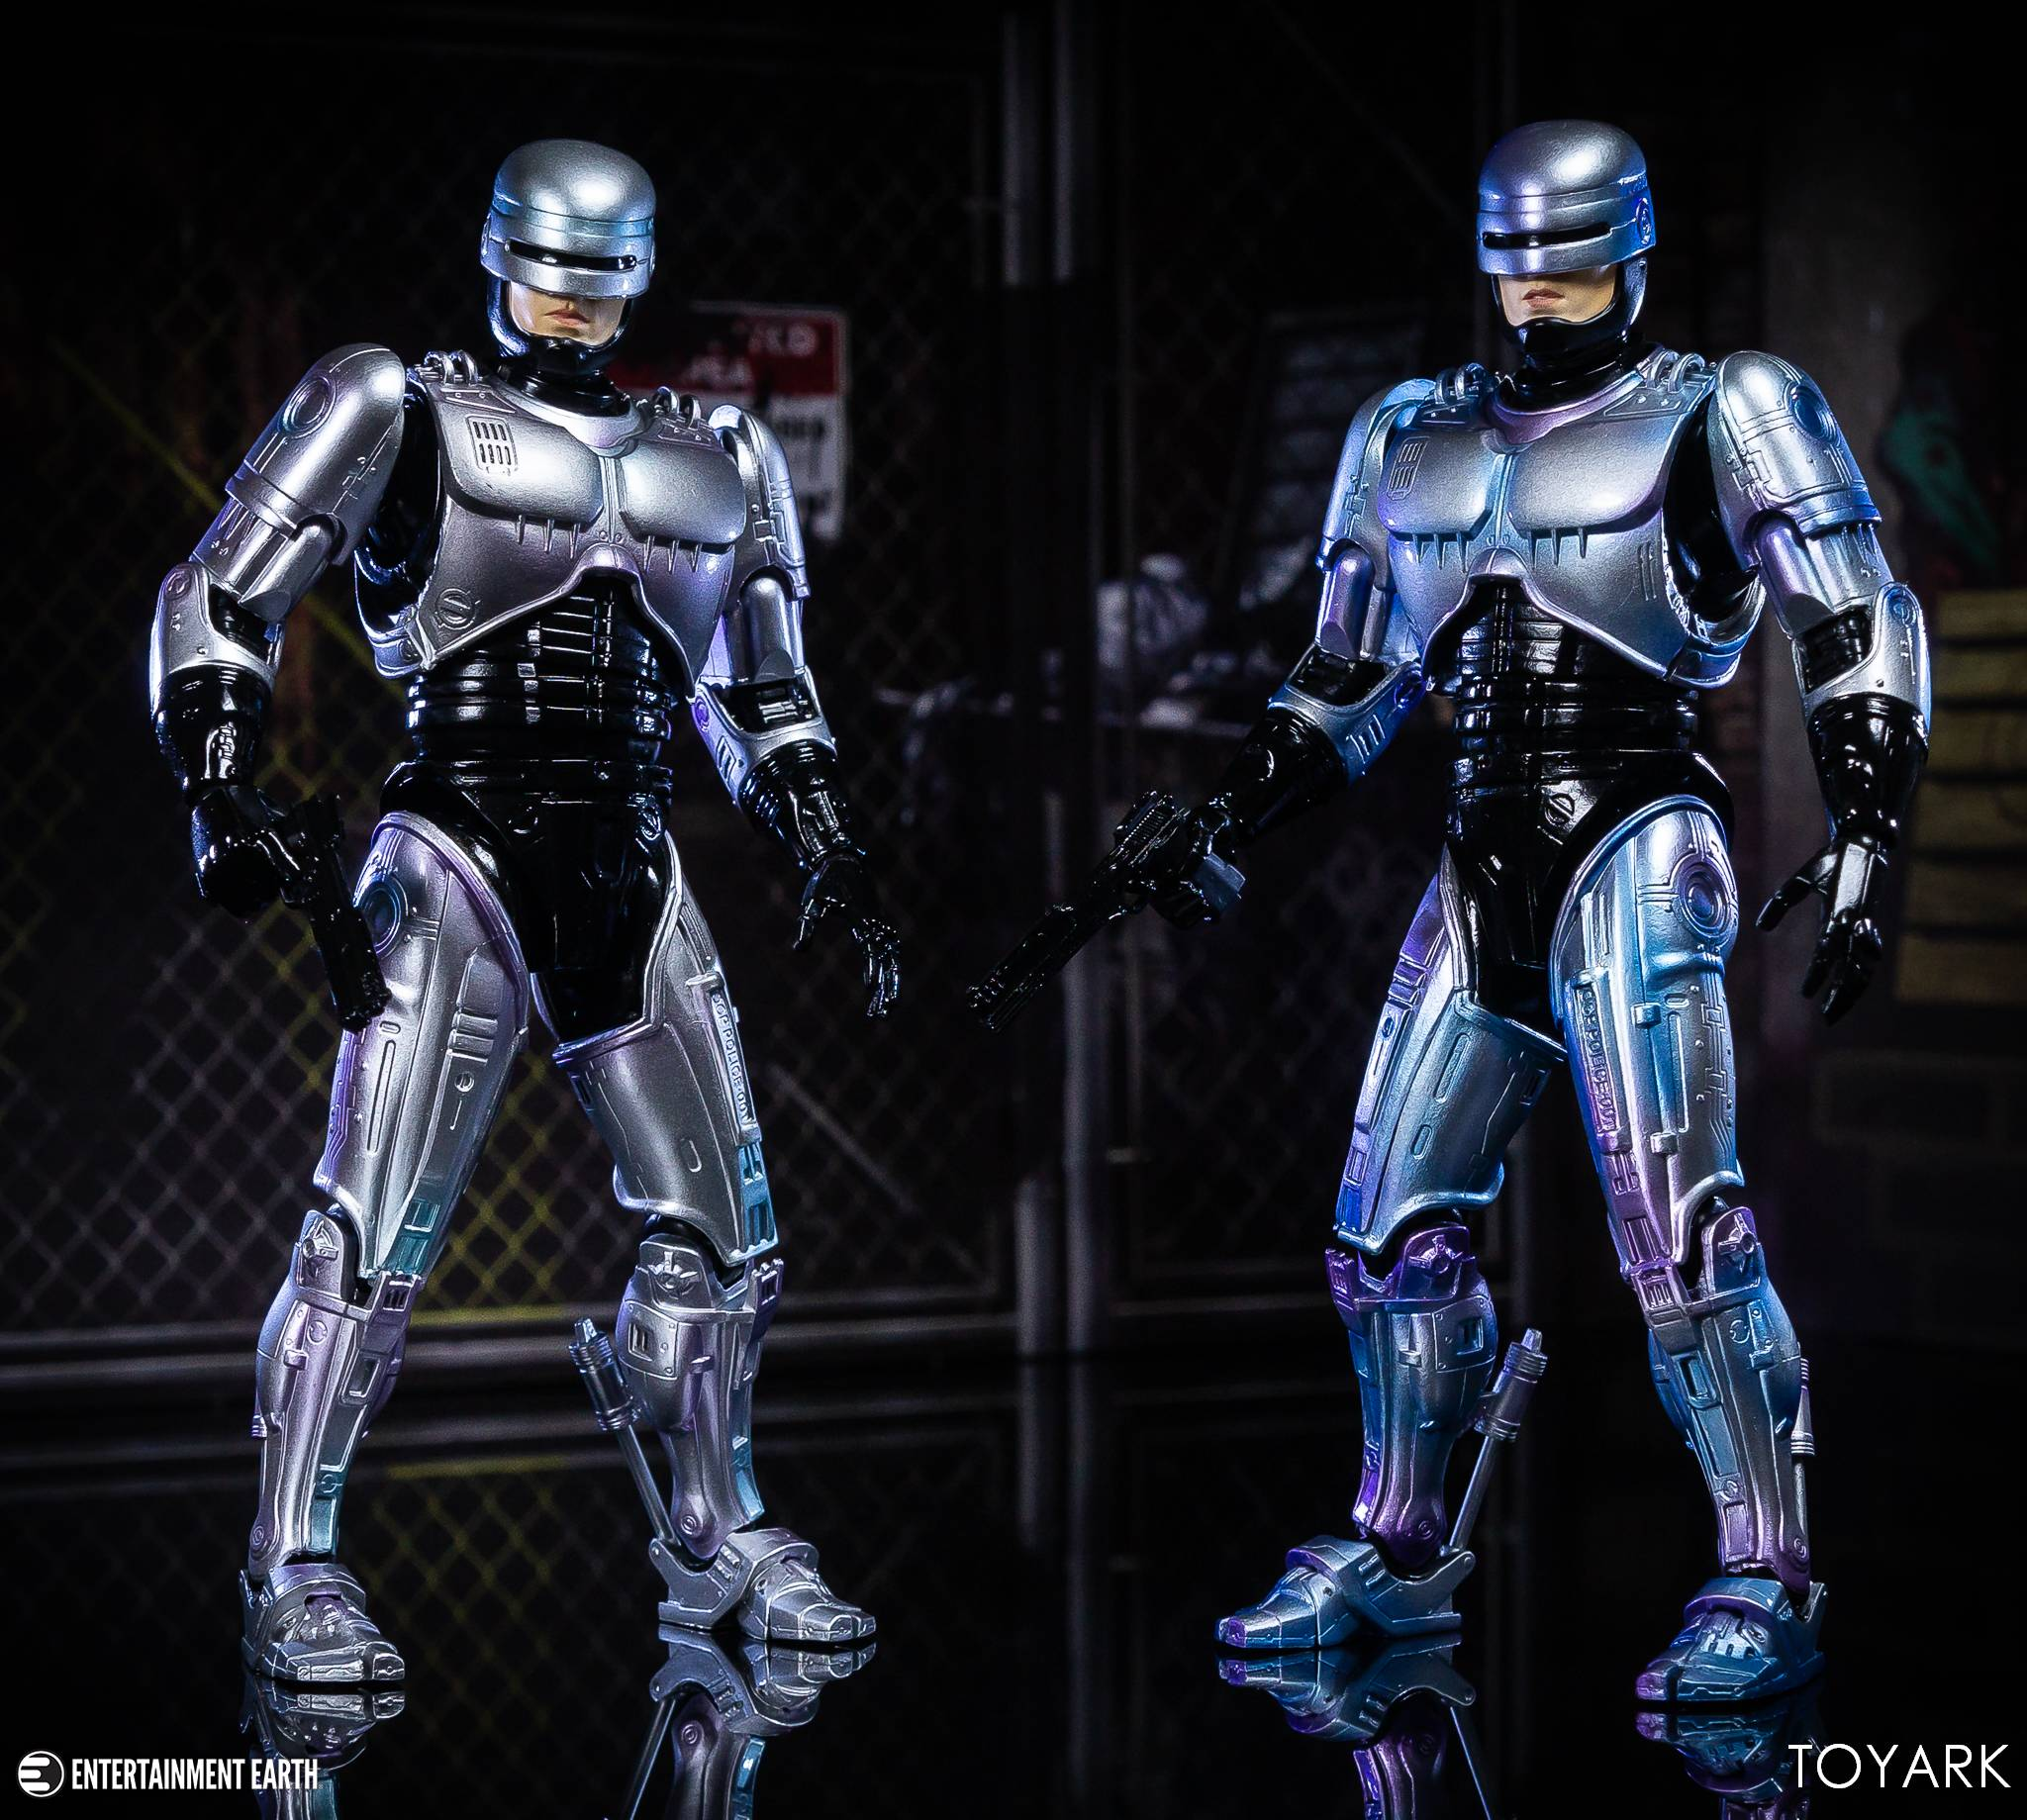 https://news.toyark.com/wp-content/uploads/sites/4/2019/05/MAFEX-Robocop-2-Gallery-033.jpg